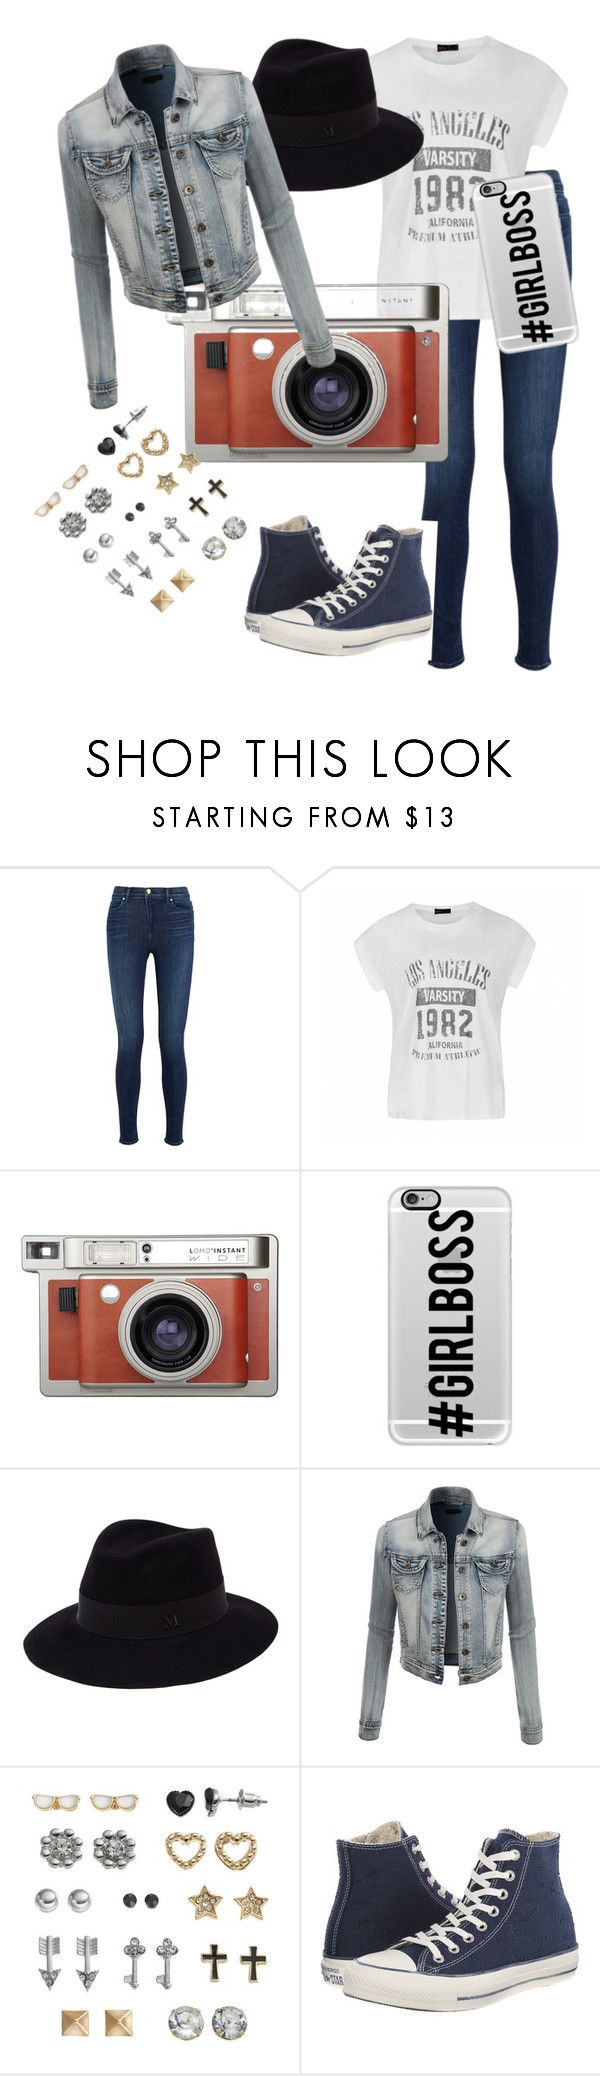 """""""Le freak chic"""" by juls22302 on Polyvore featuring J Brand, Ally Fashion, Lomography, Casetify, Maison Michel, LE3NO, SO and Converse"""